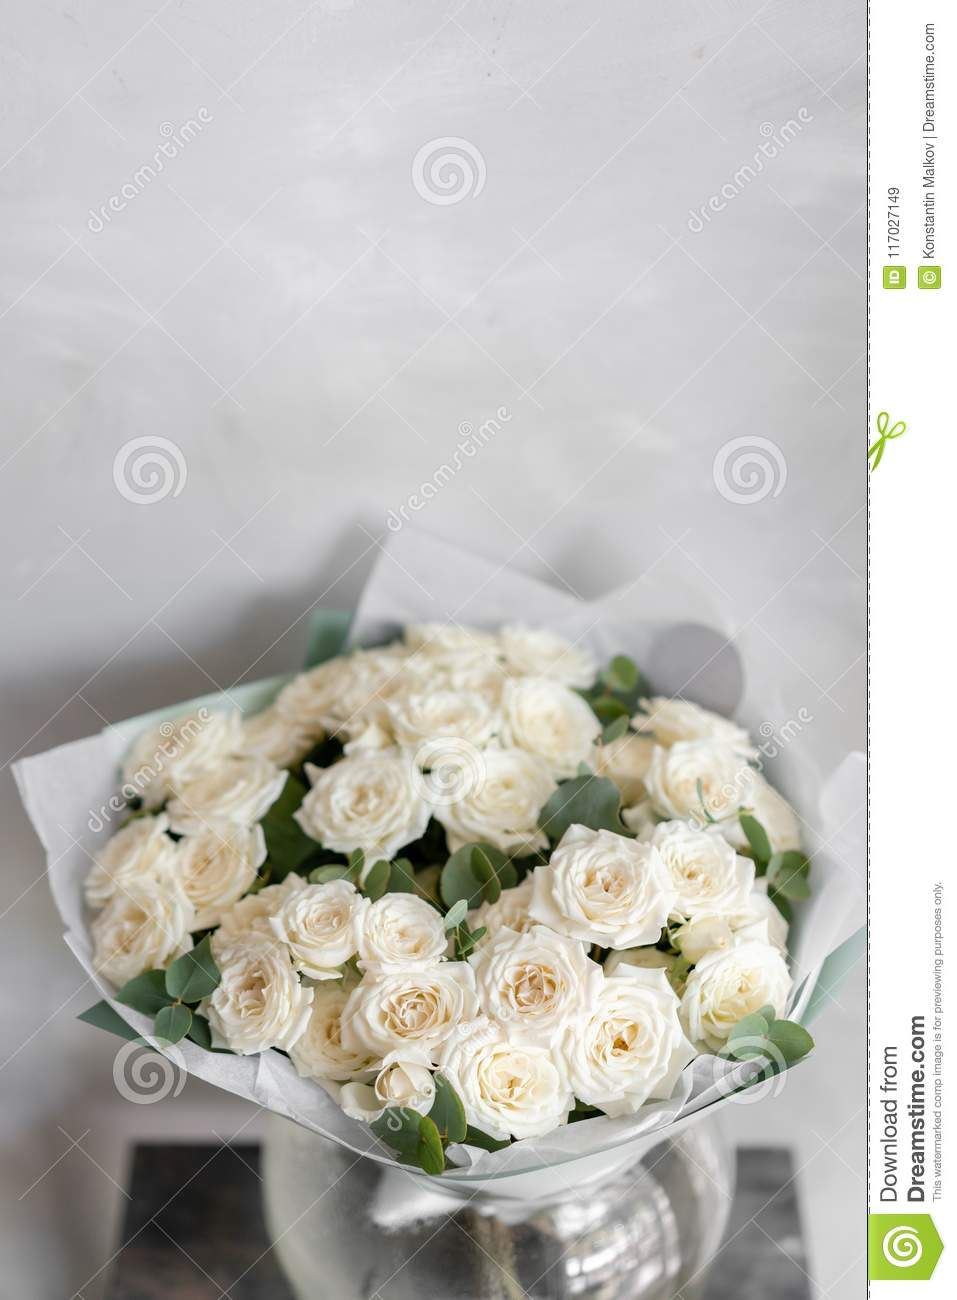 White Spray Roses Bouquet Of Beautiful Flowers On Wooden Table